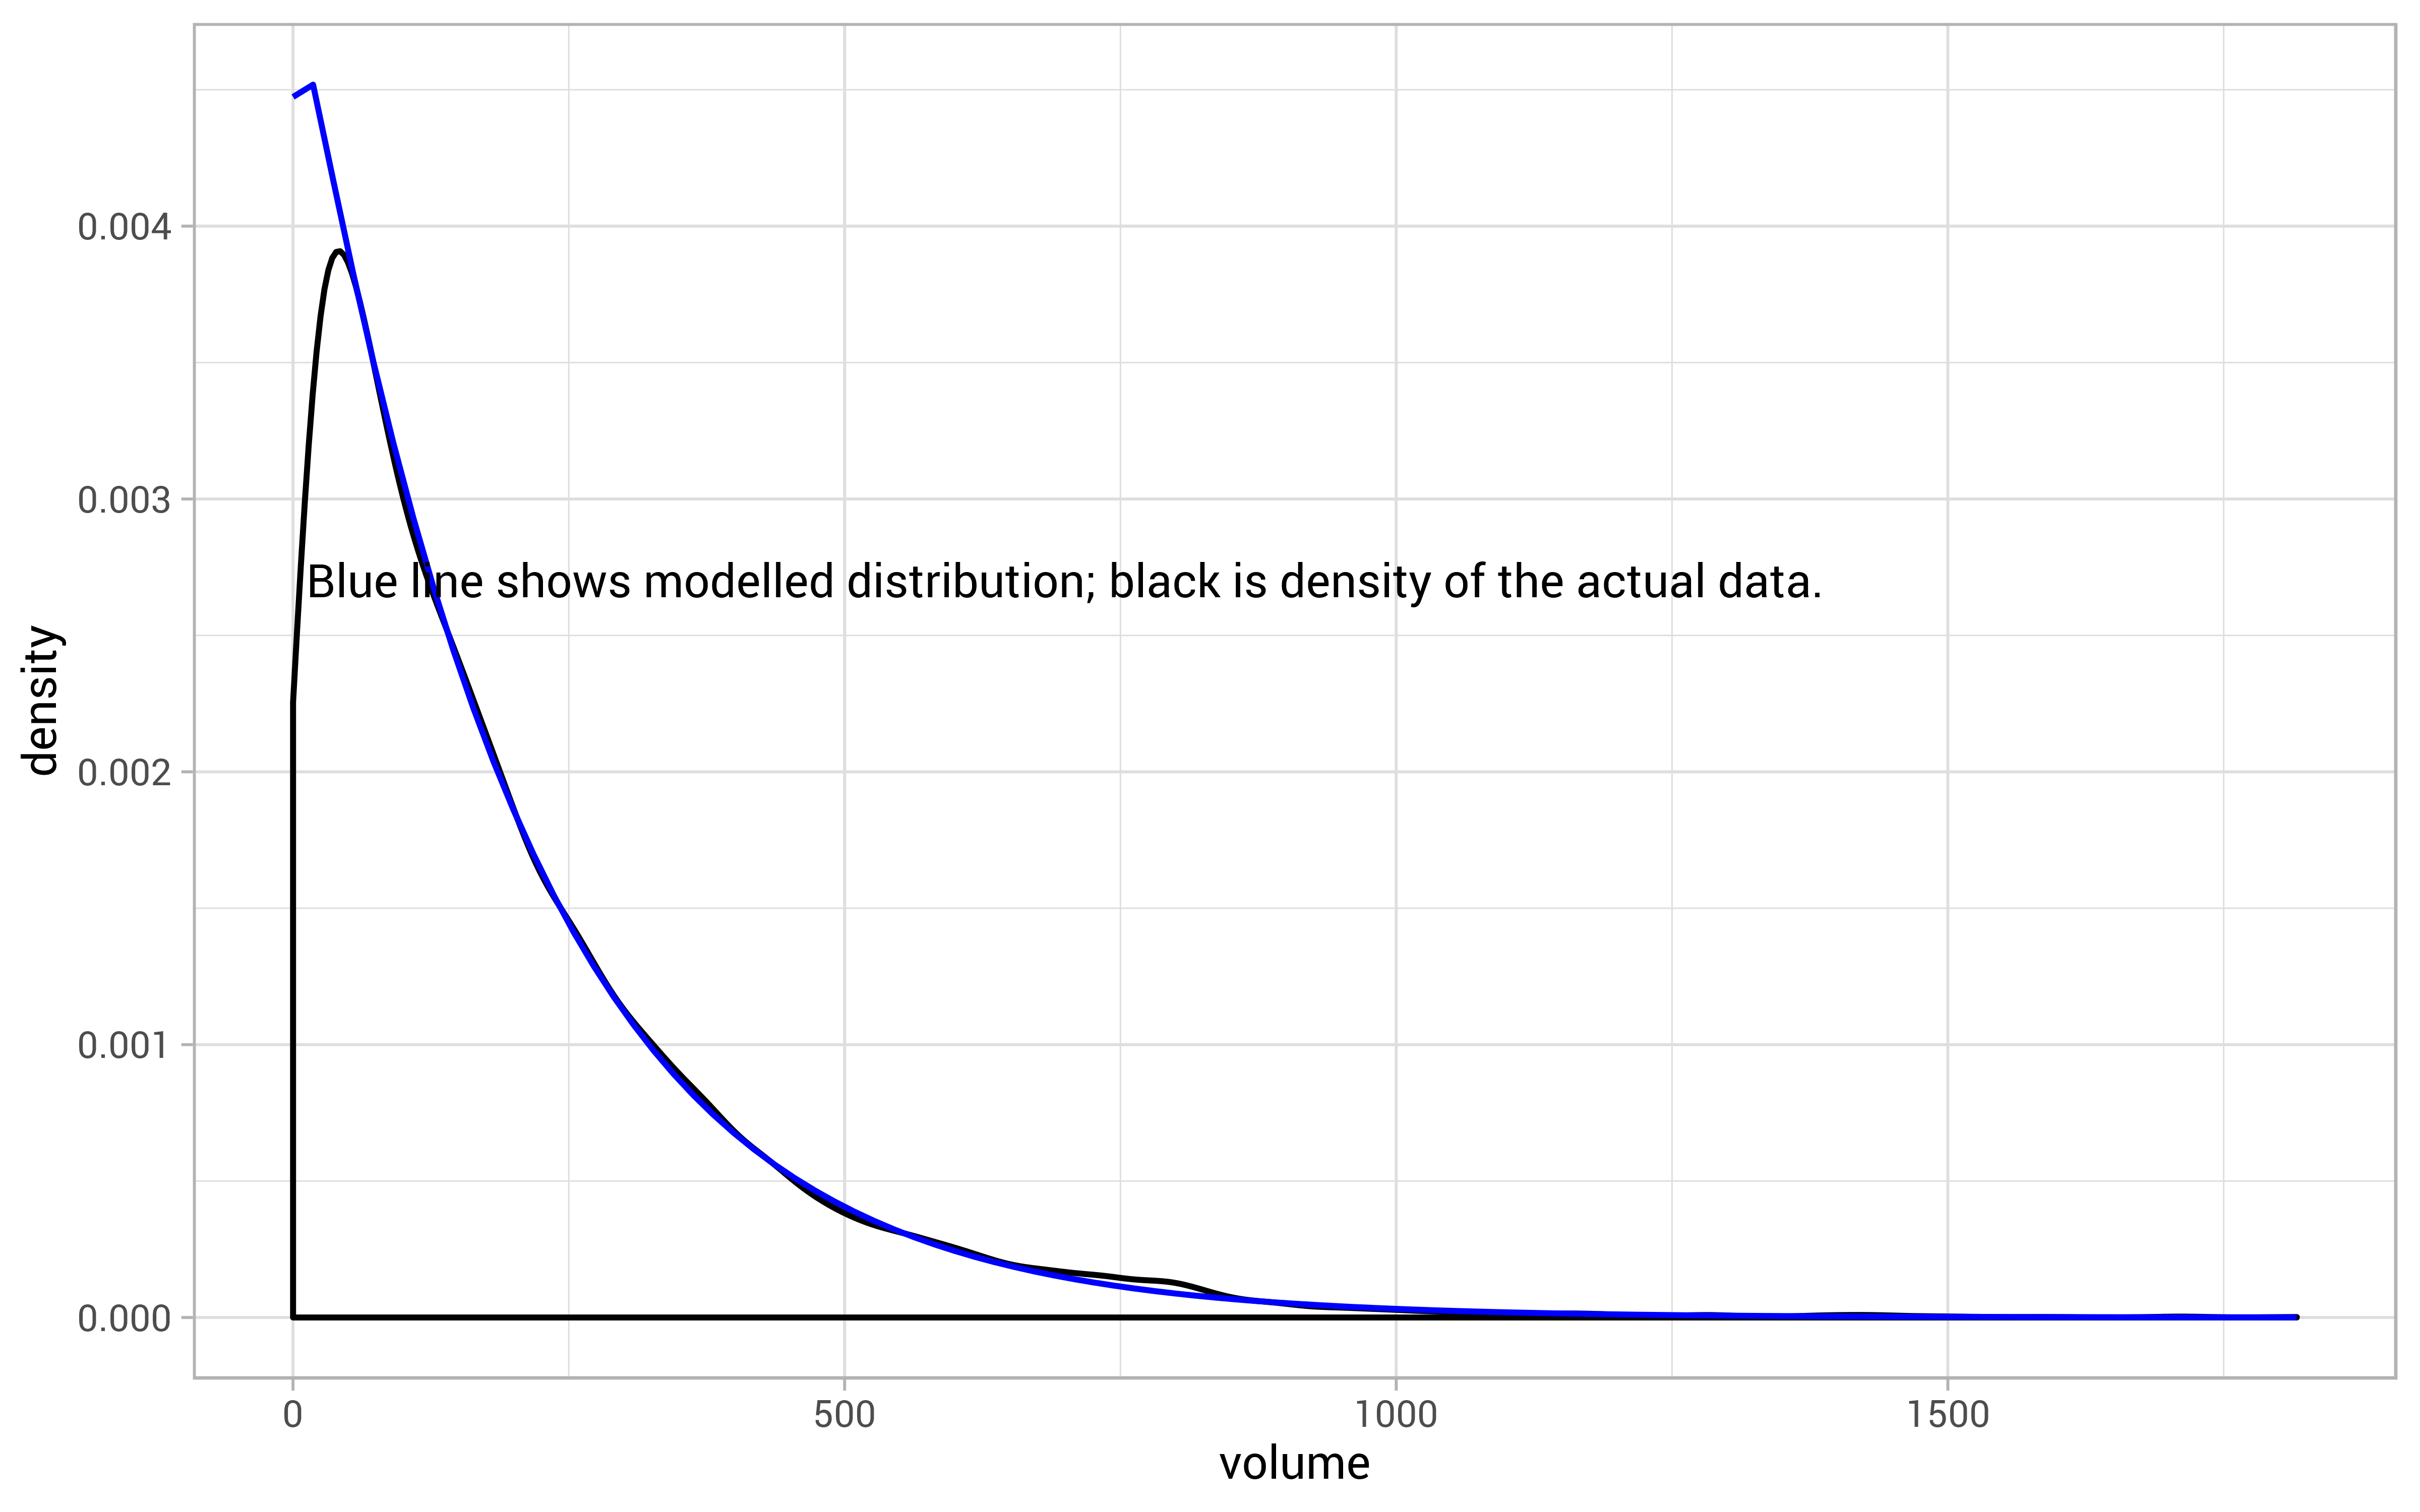 Inferring a continuous distribution from binned data by @ellis2013nz